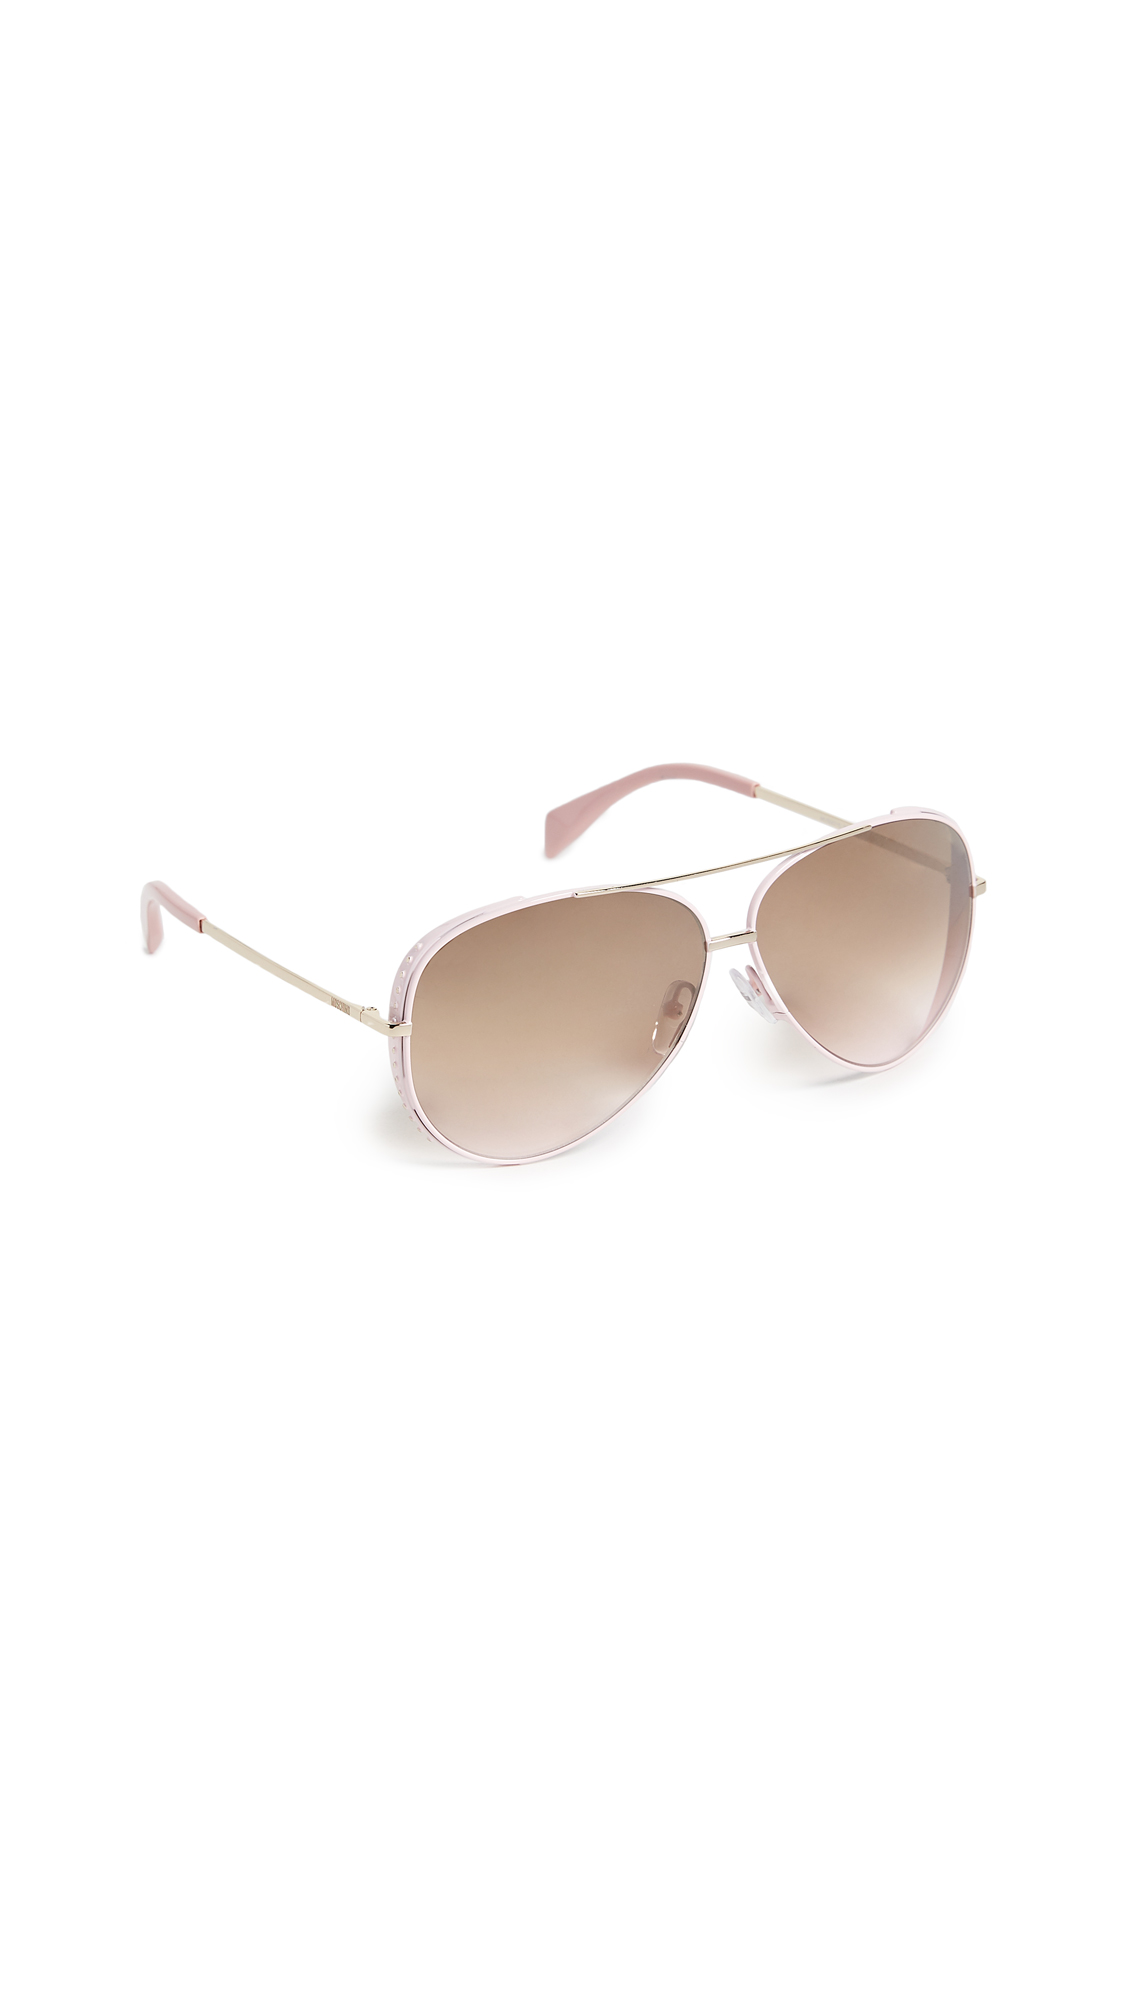 Moschino Aviator Sunglasses - Pink/Brown Gradient